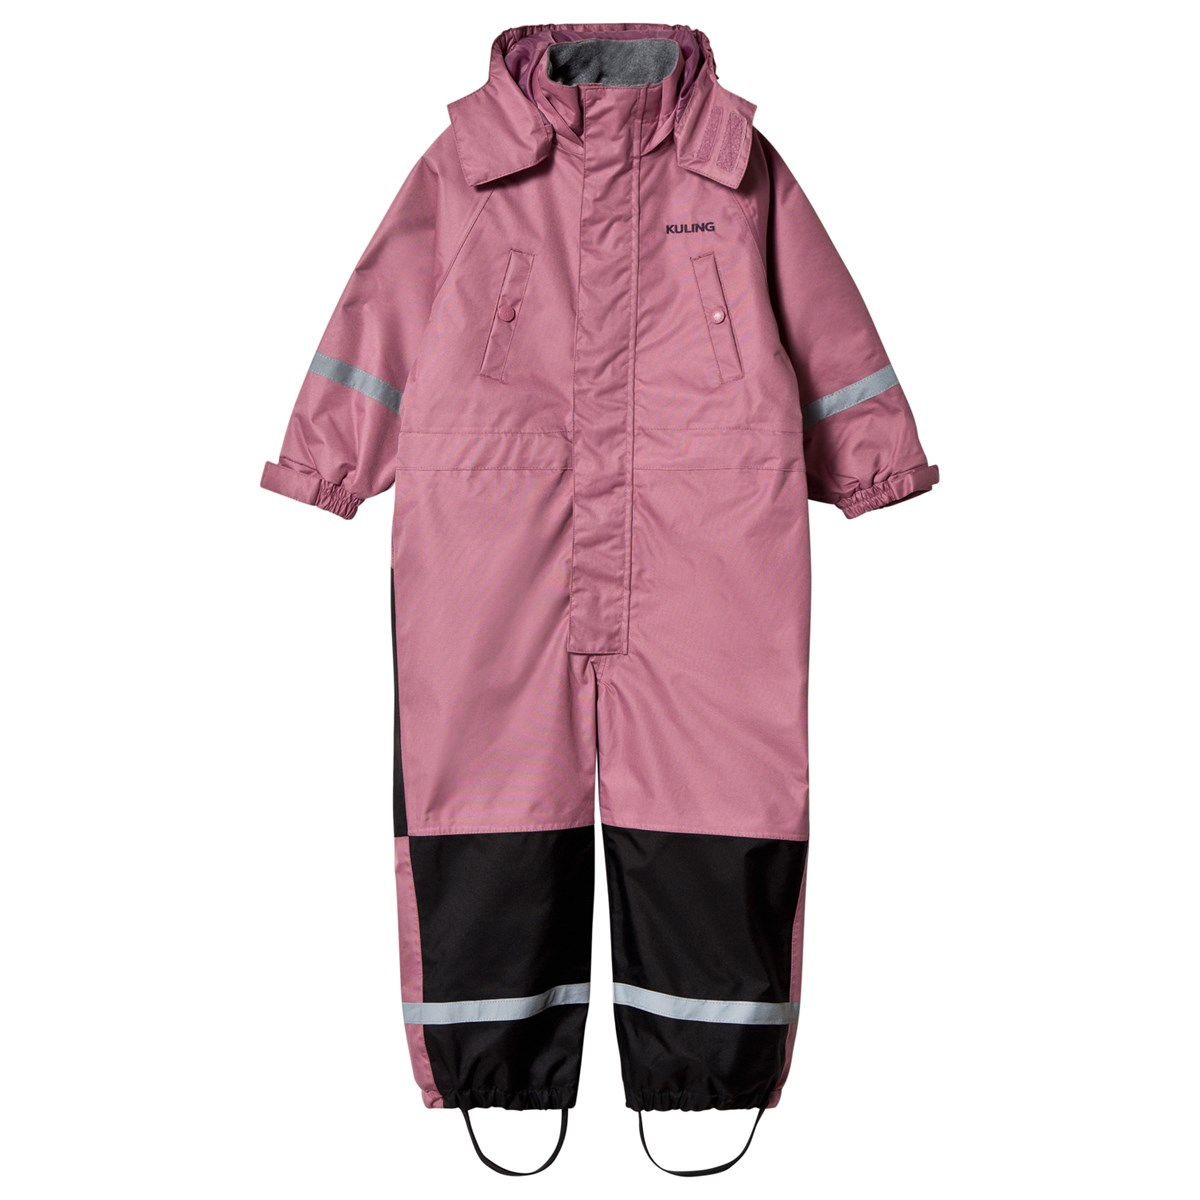 Kuling Orchid Rose Extreme Copenhagen Outdoor Shell Coverall